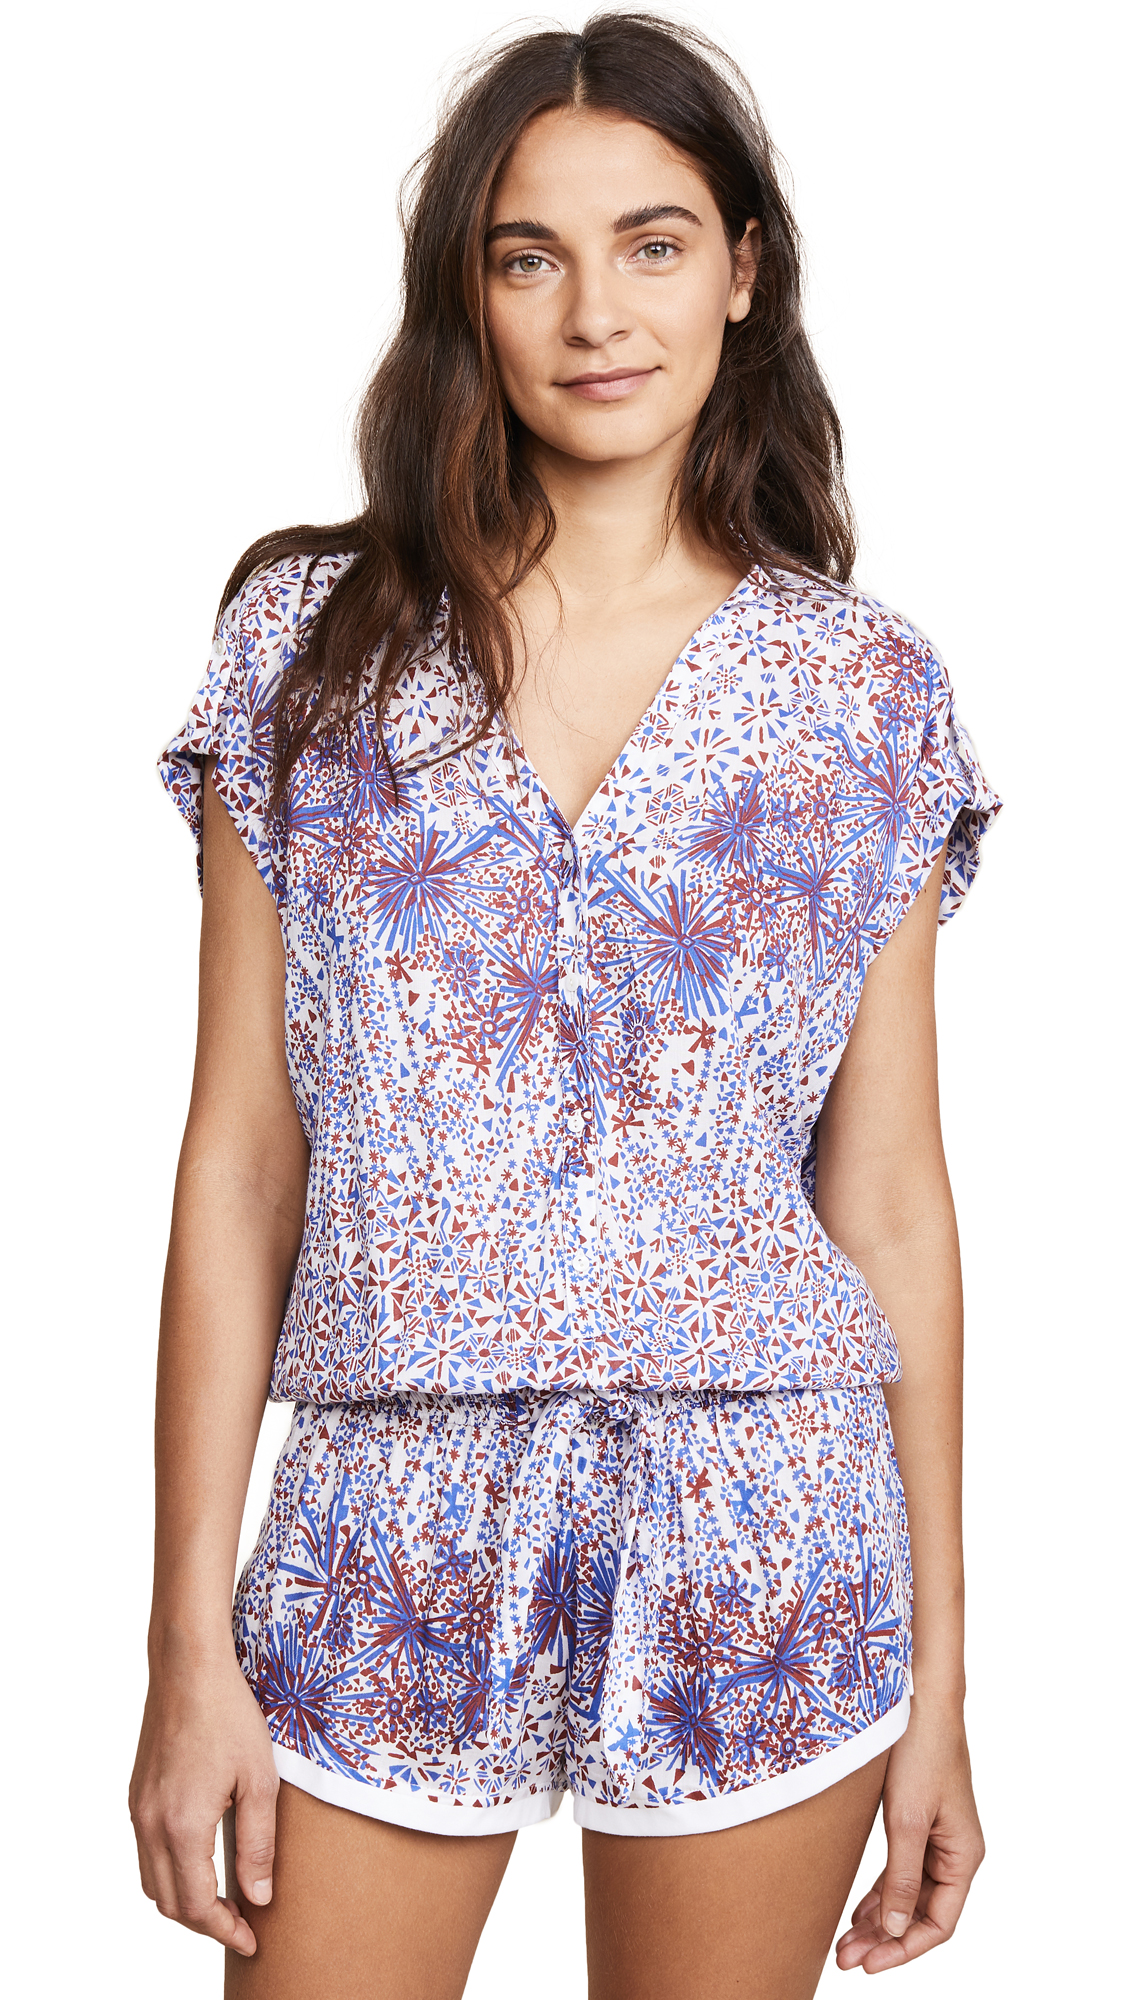 aa905adcd0 Poupette St Barth Aba Short Jumpsuit In White Brown